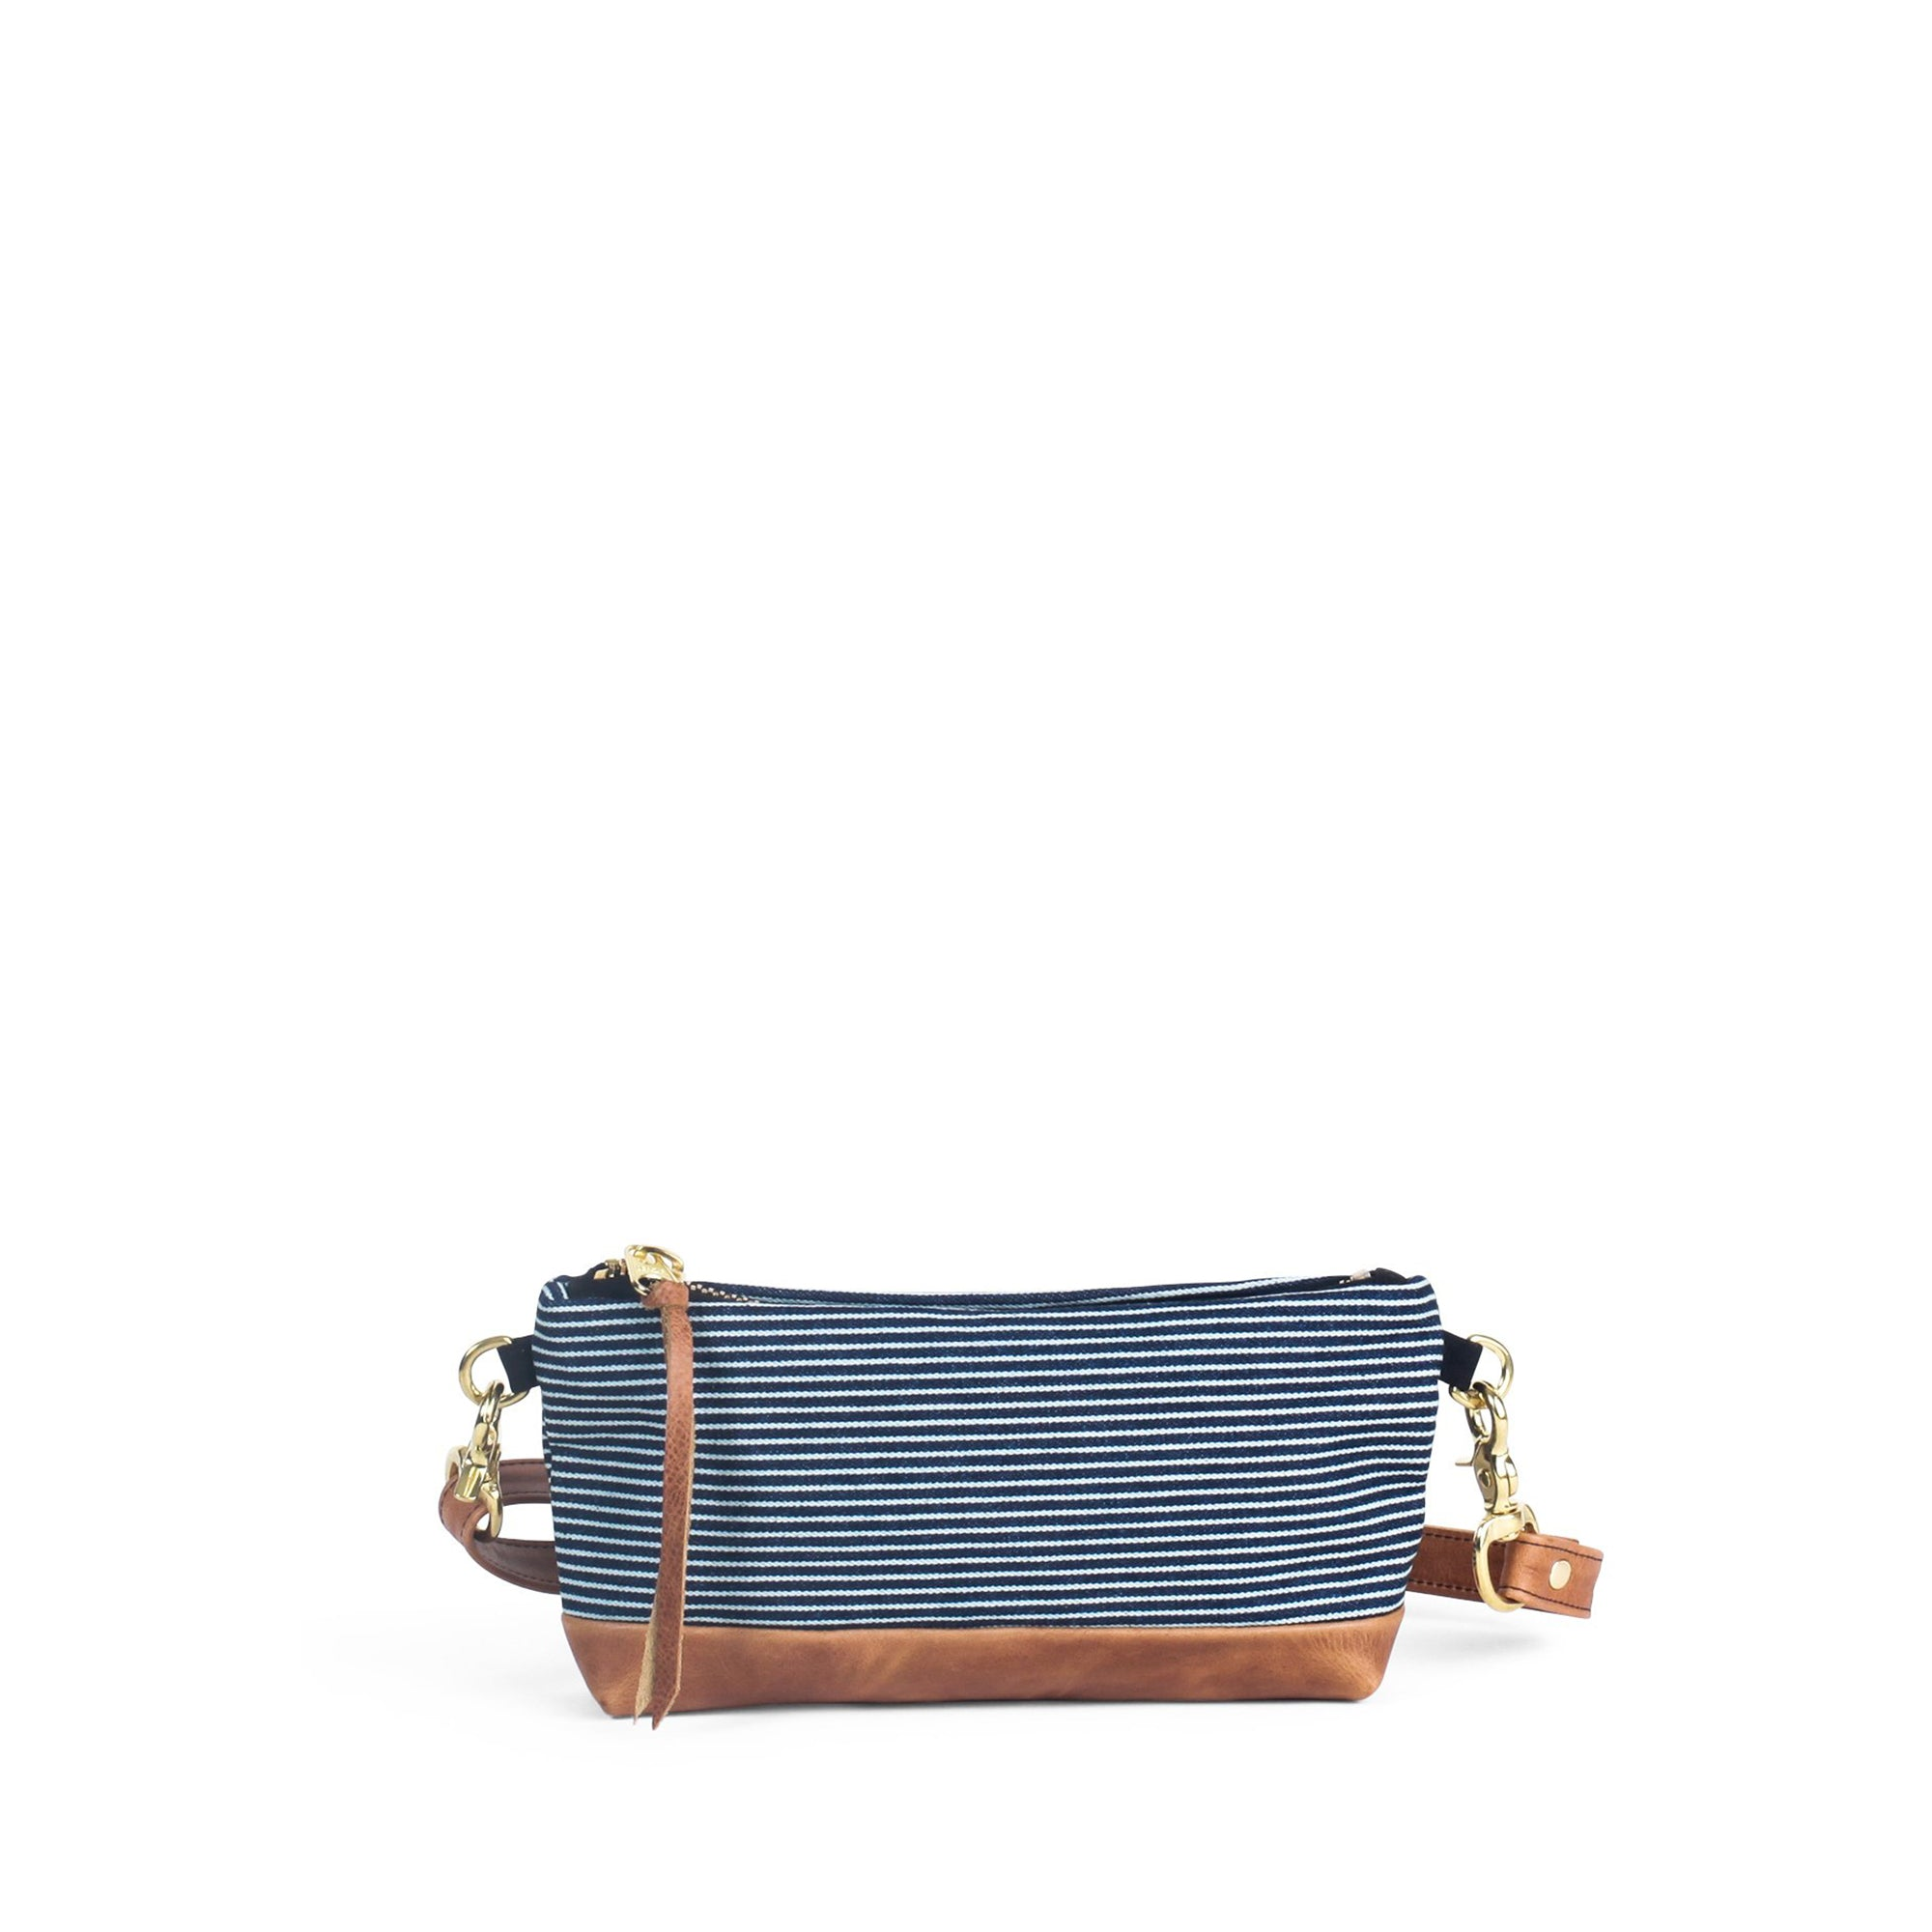 The Mini Vida Fanny Pack - Kel